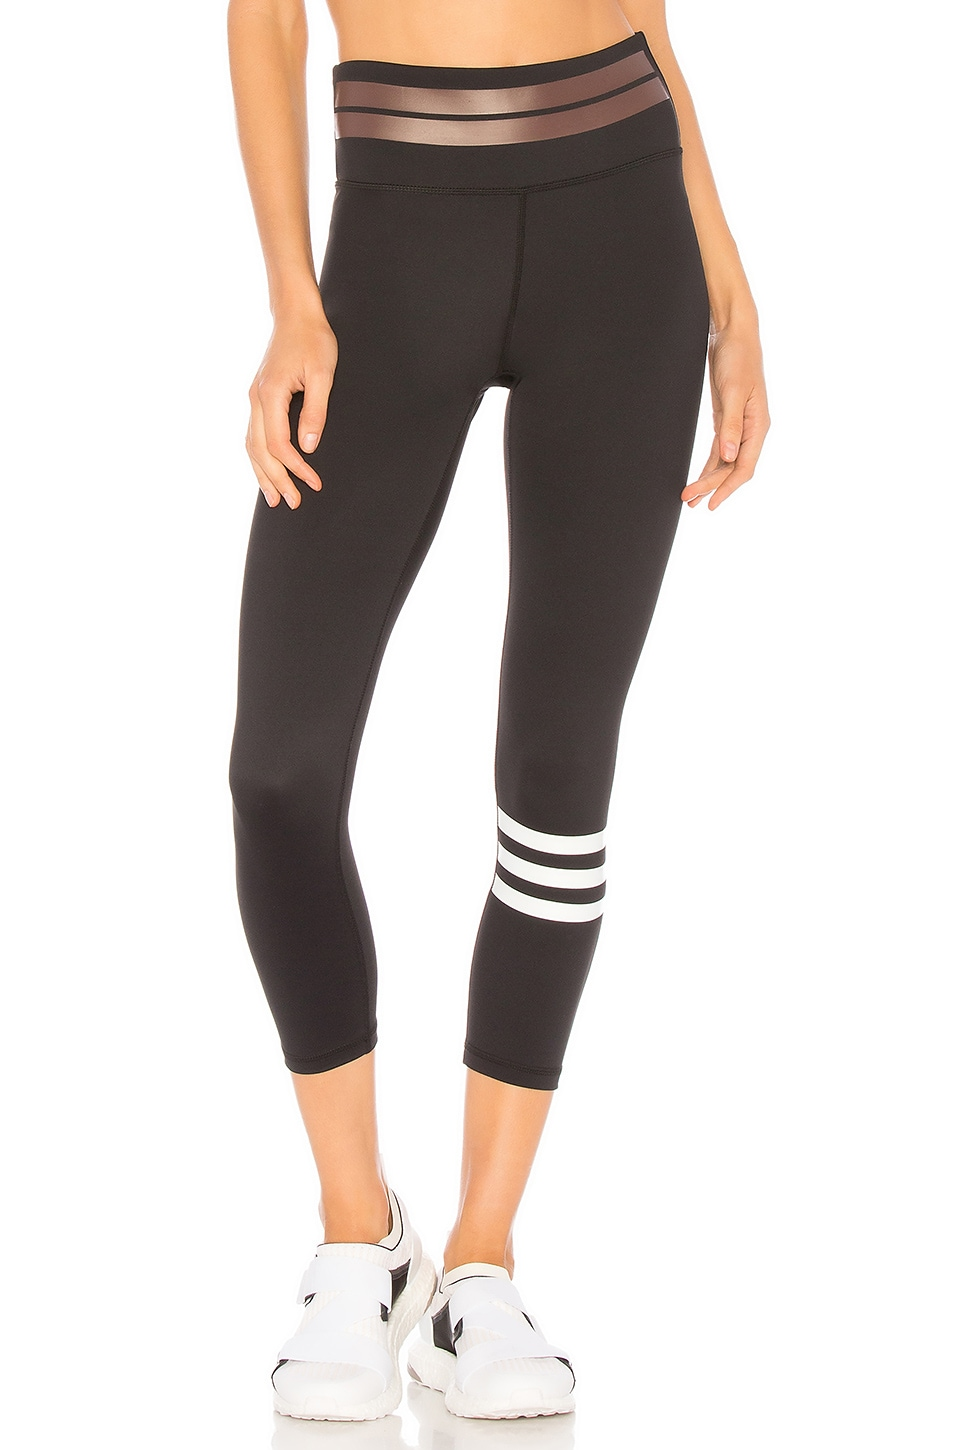 LILYBOD Remy Legging in Black